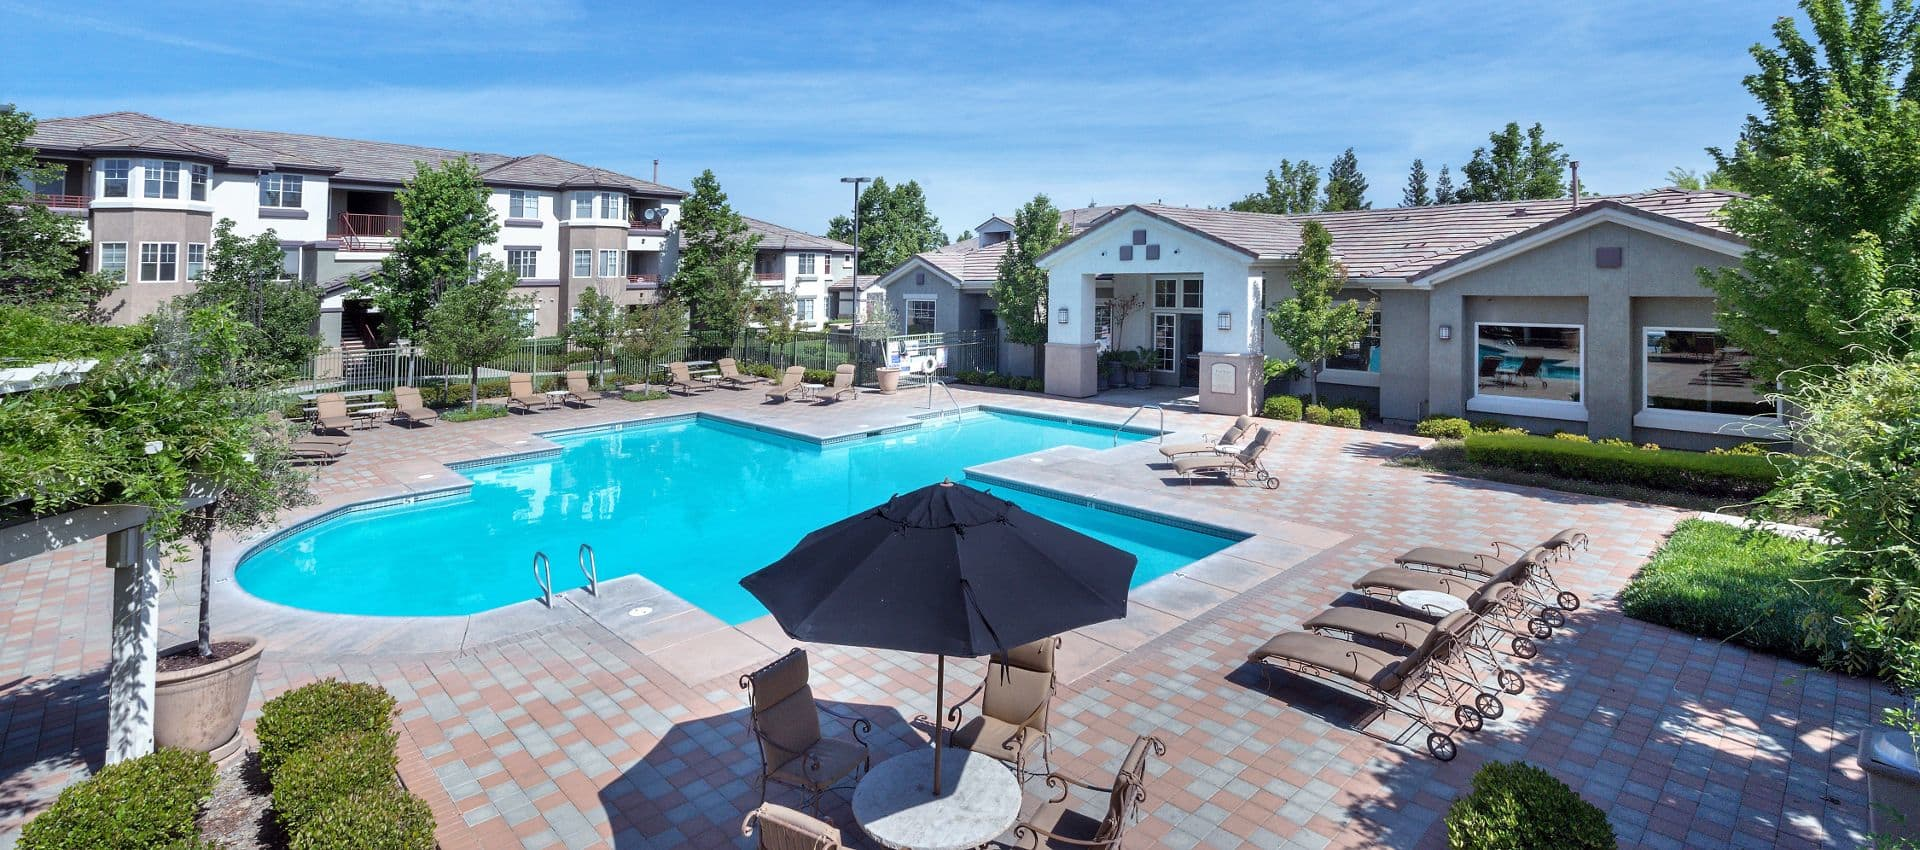 The Artisan Apartment Homes's Swimming Pool View From Above in Sacramento, CA